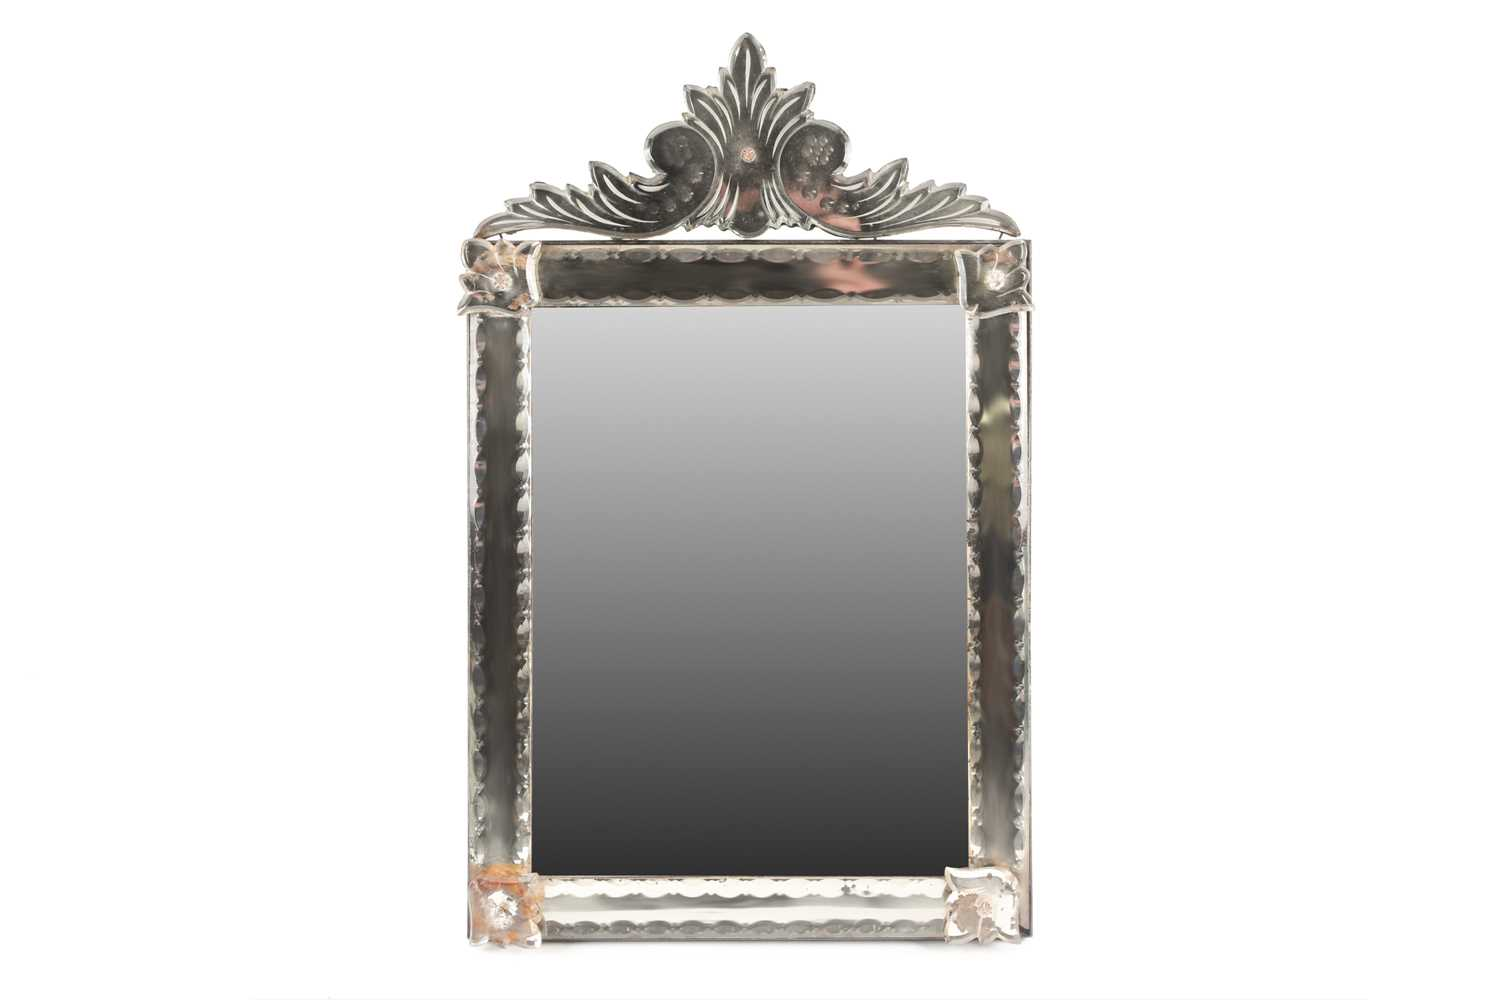 A Venetian dressing table mirror, with scroll surmount and easel back, 62 cm x 38 cm (full